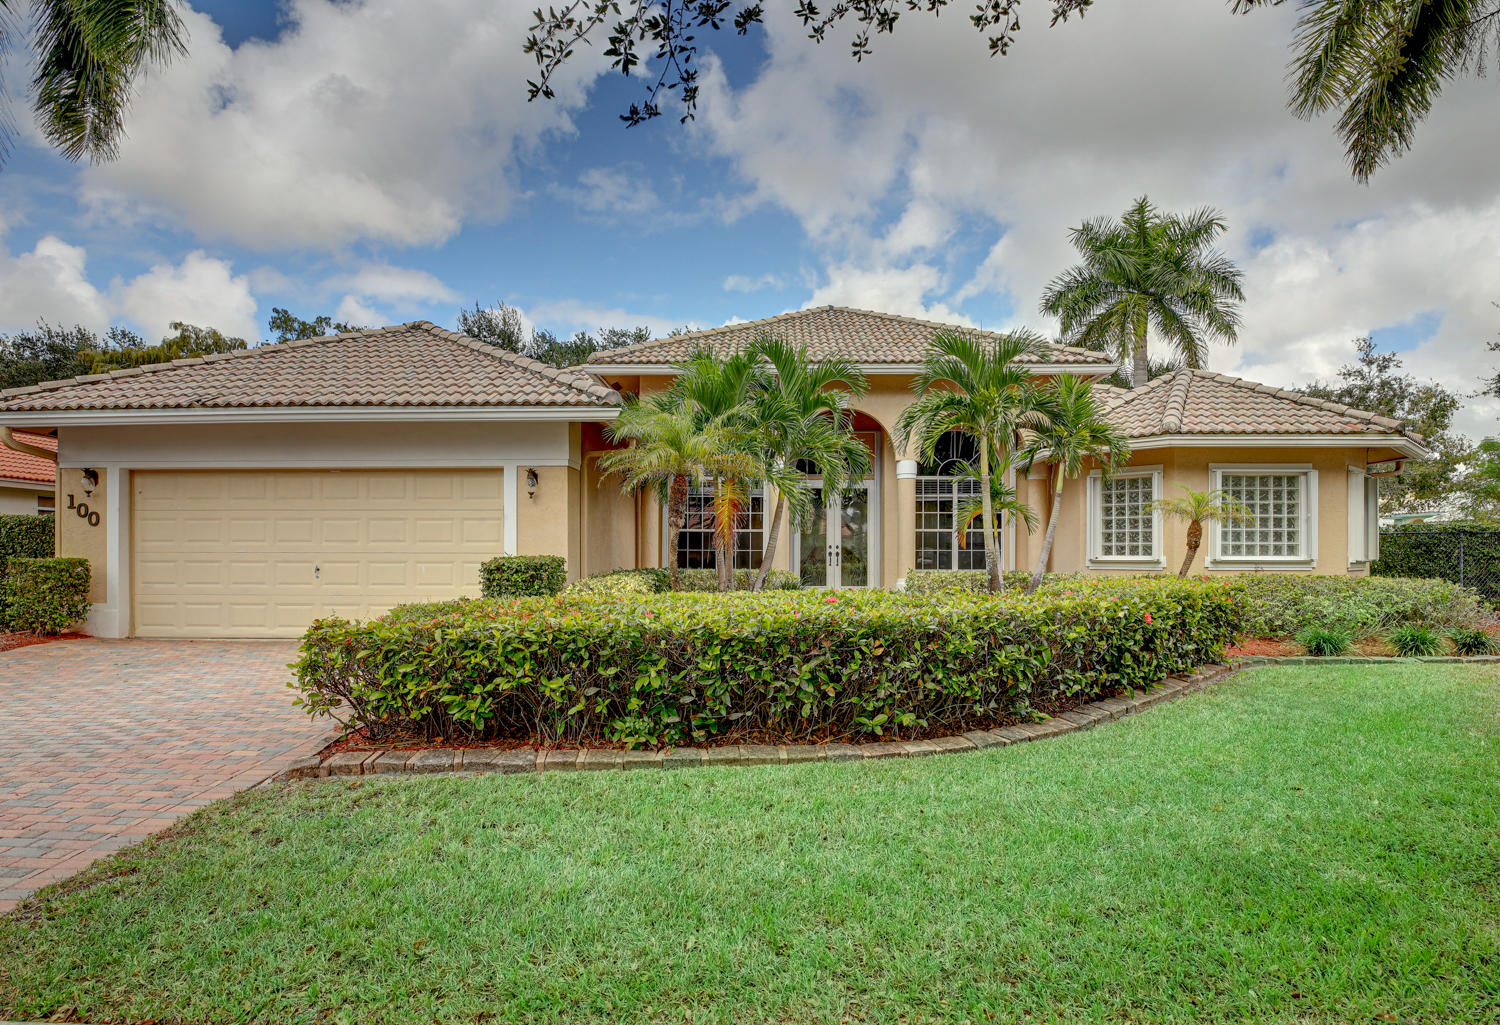 Photo of 100 Silver Bell Crescent, Royal Palm Beach, FL 33411